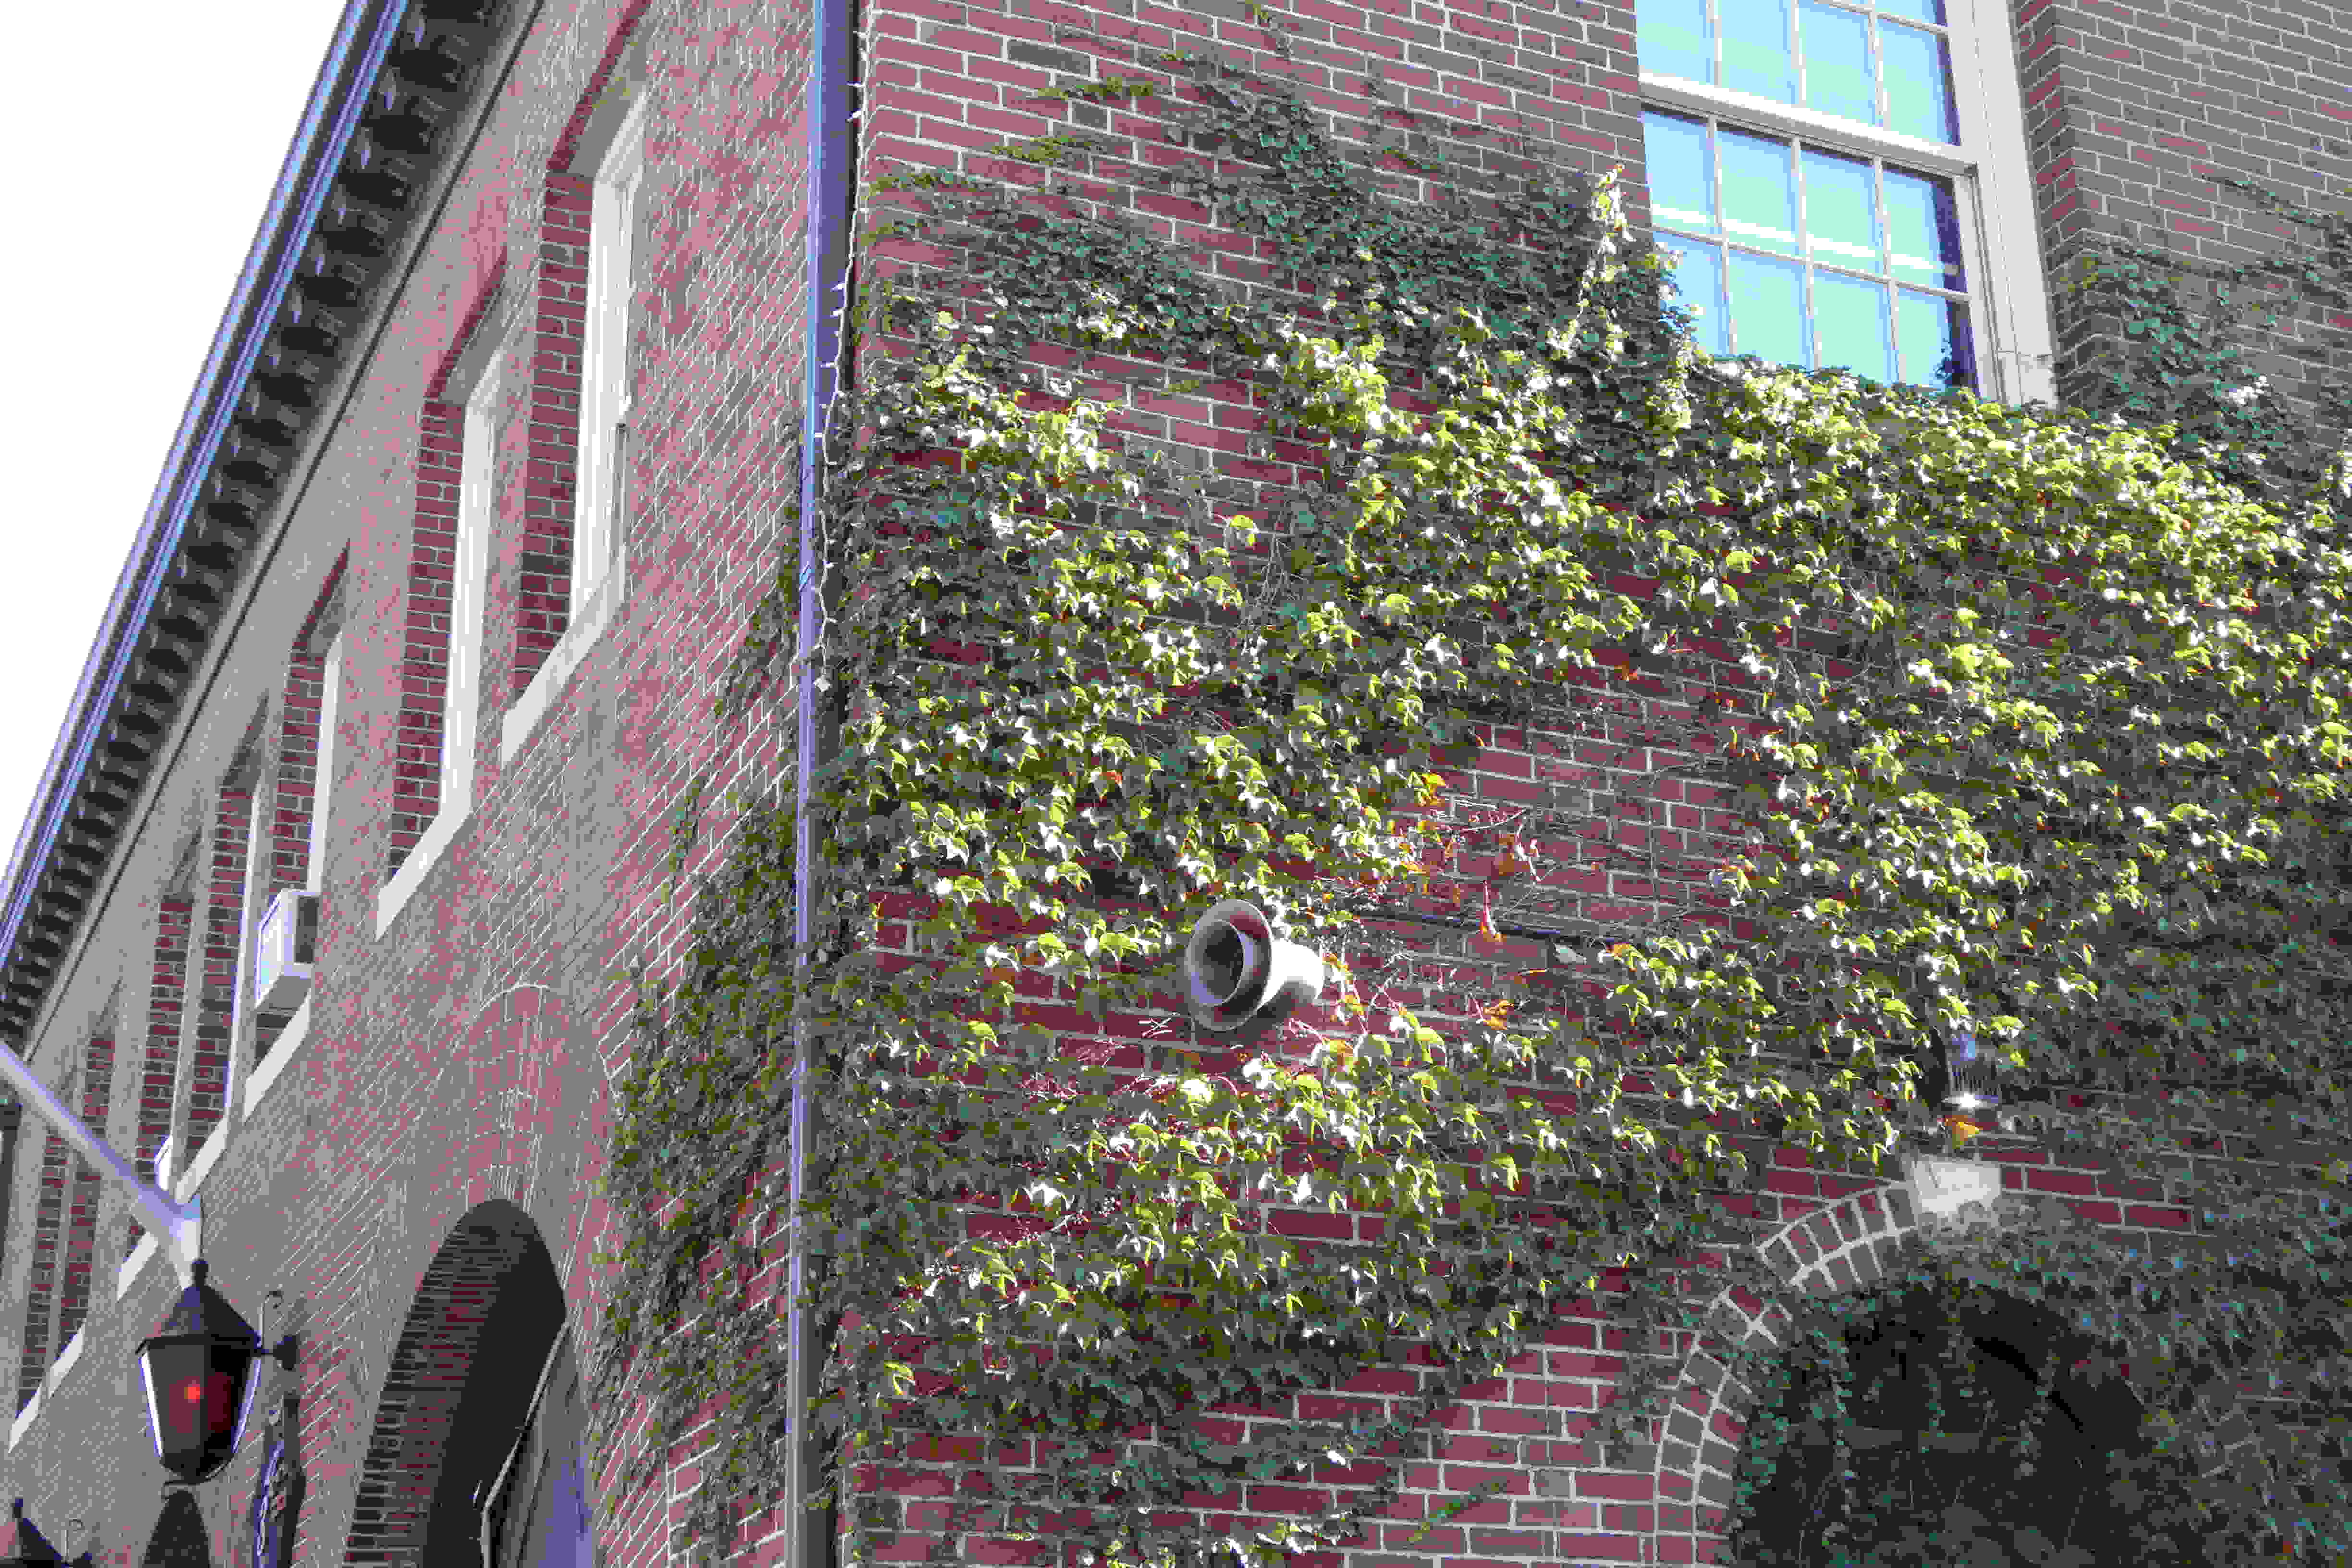 A sample photo of ivy on a firehouse taken by the Panasonic Lumix DSC-ZS40.